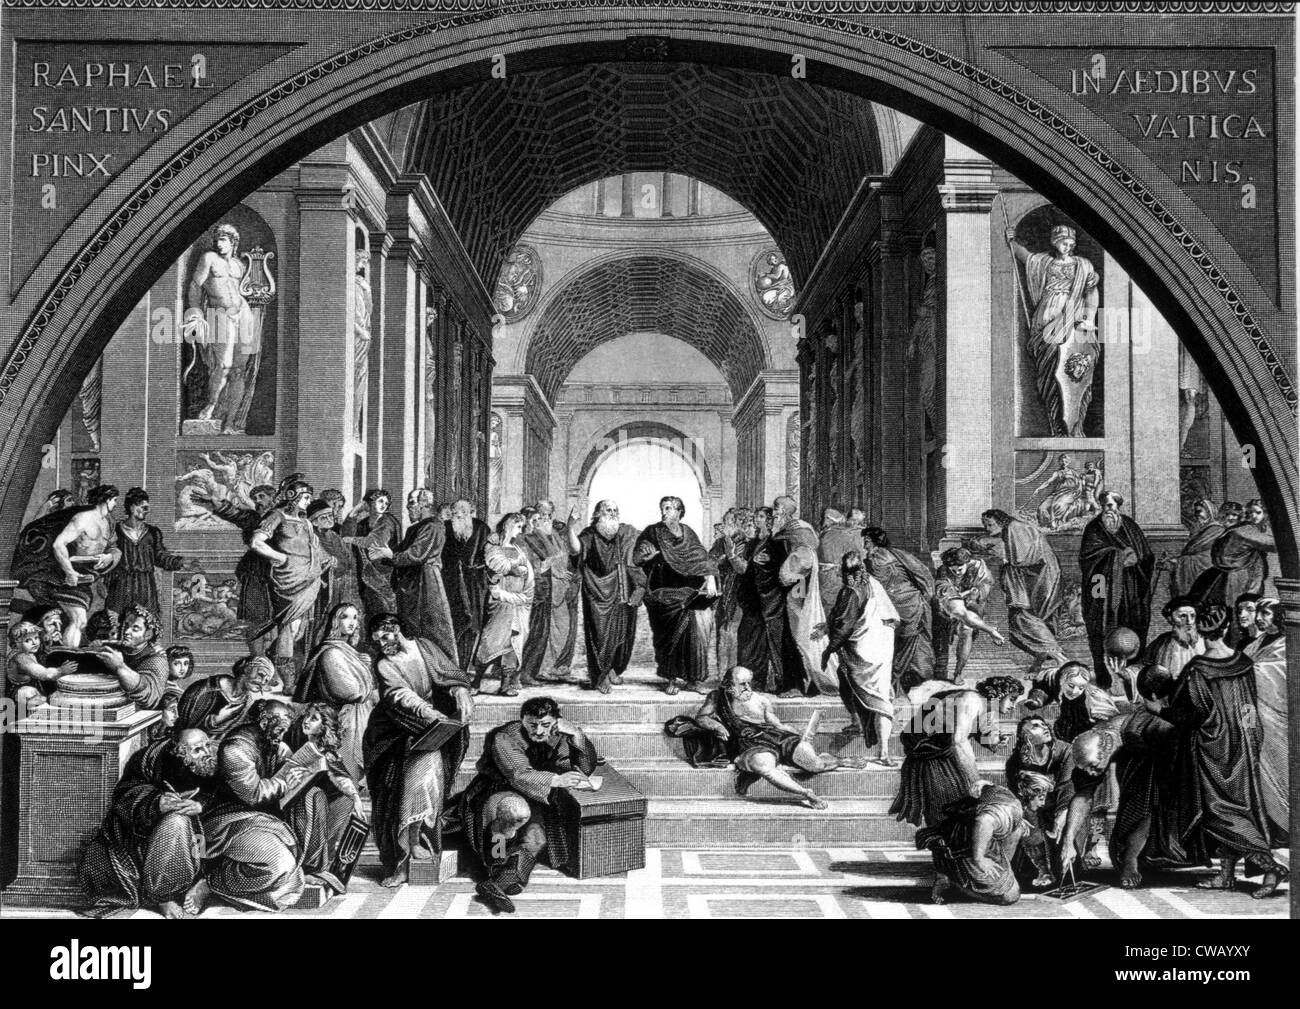 Socrates (center, left), at the school of Athens, 400 BC. Engraving after painting by Raphael. - Stock Image